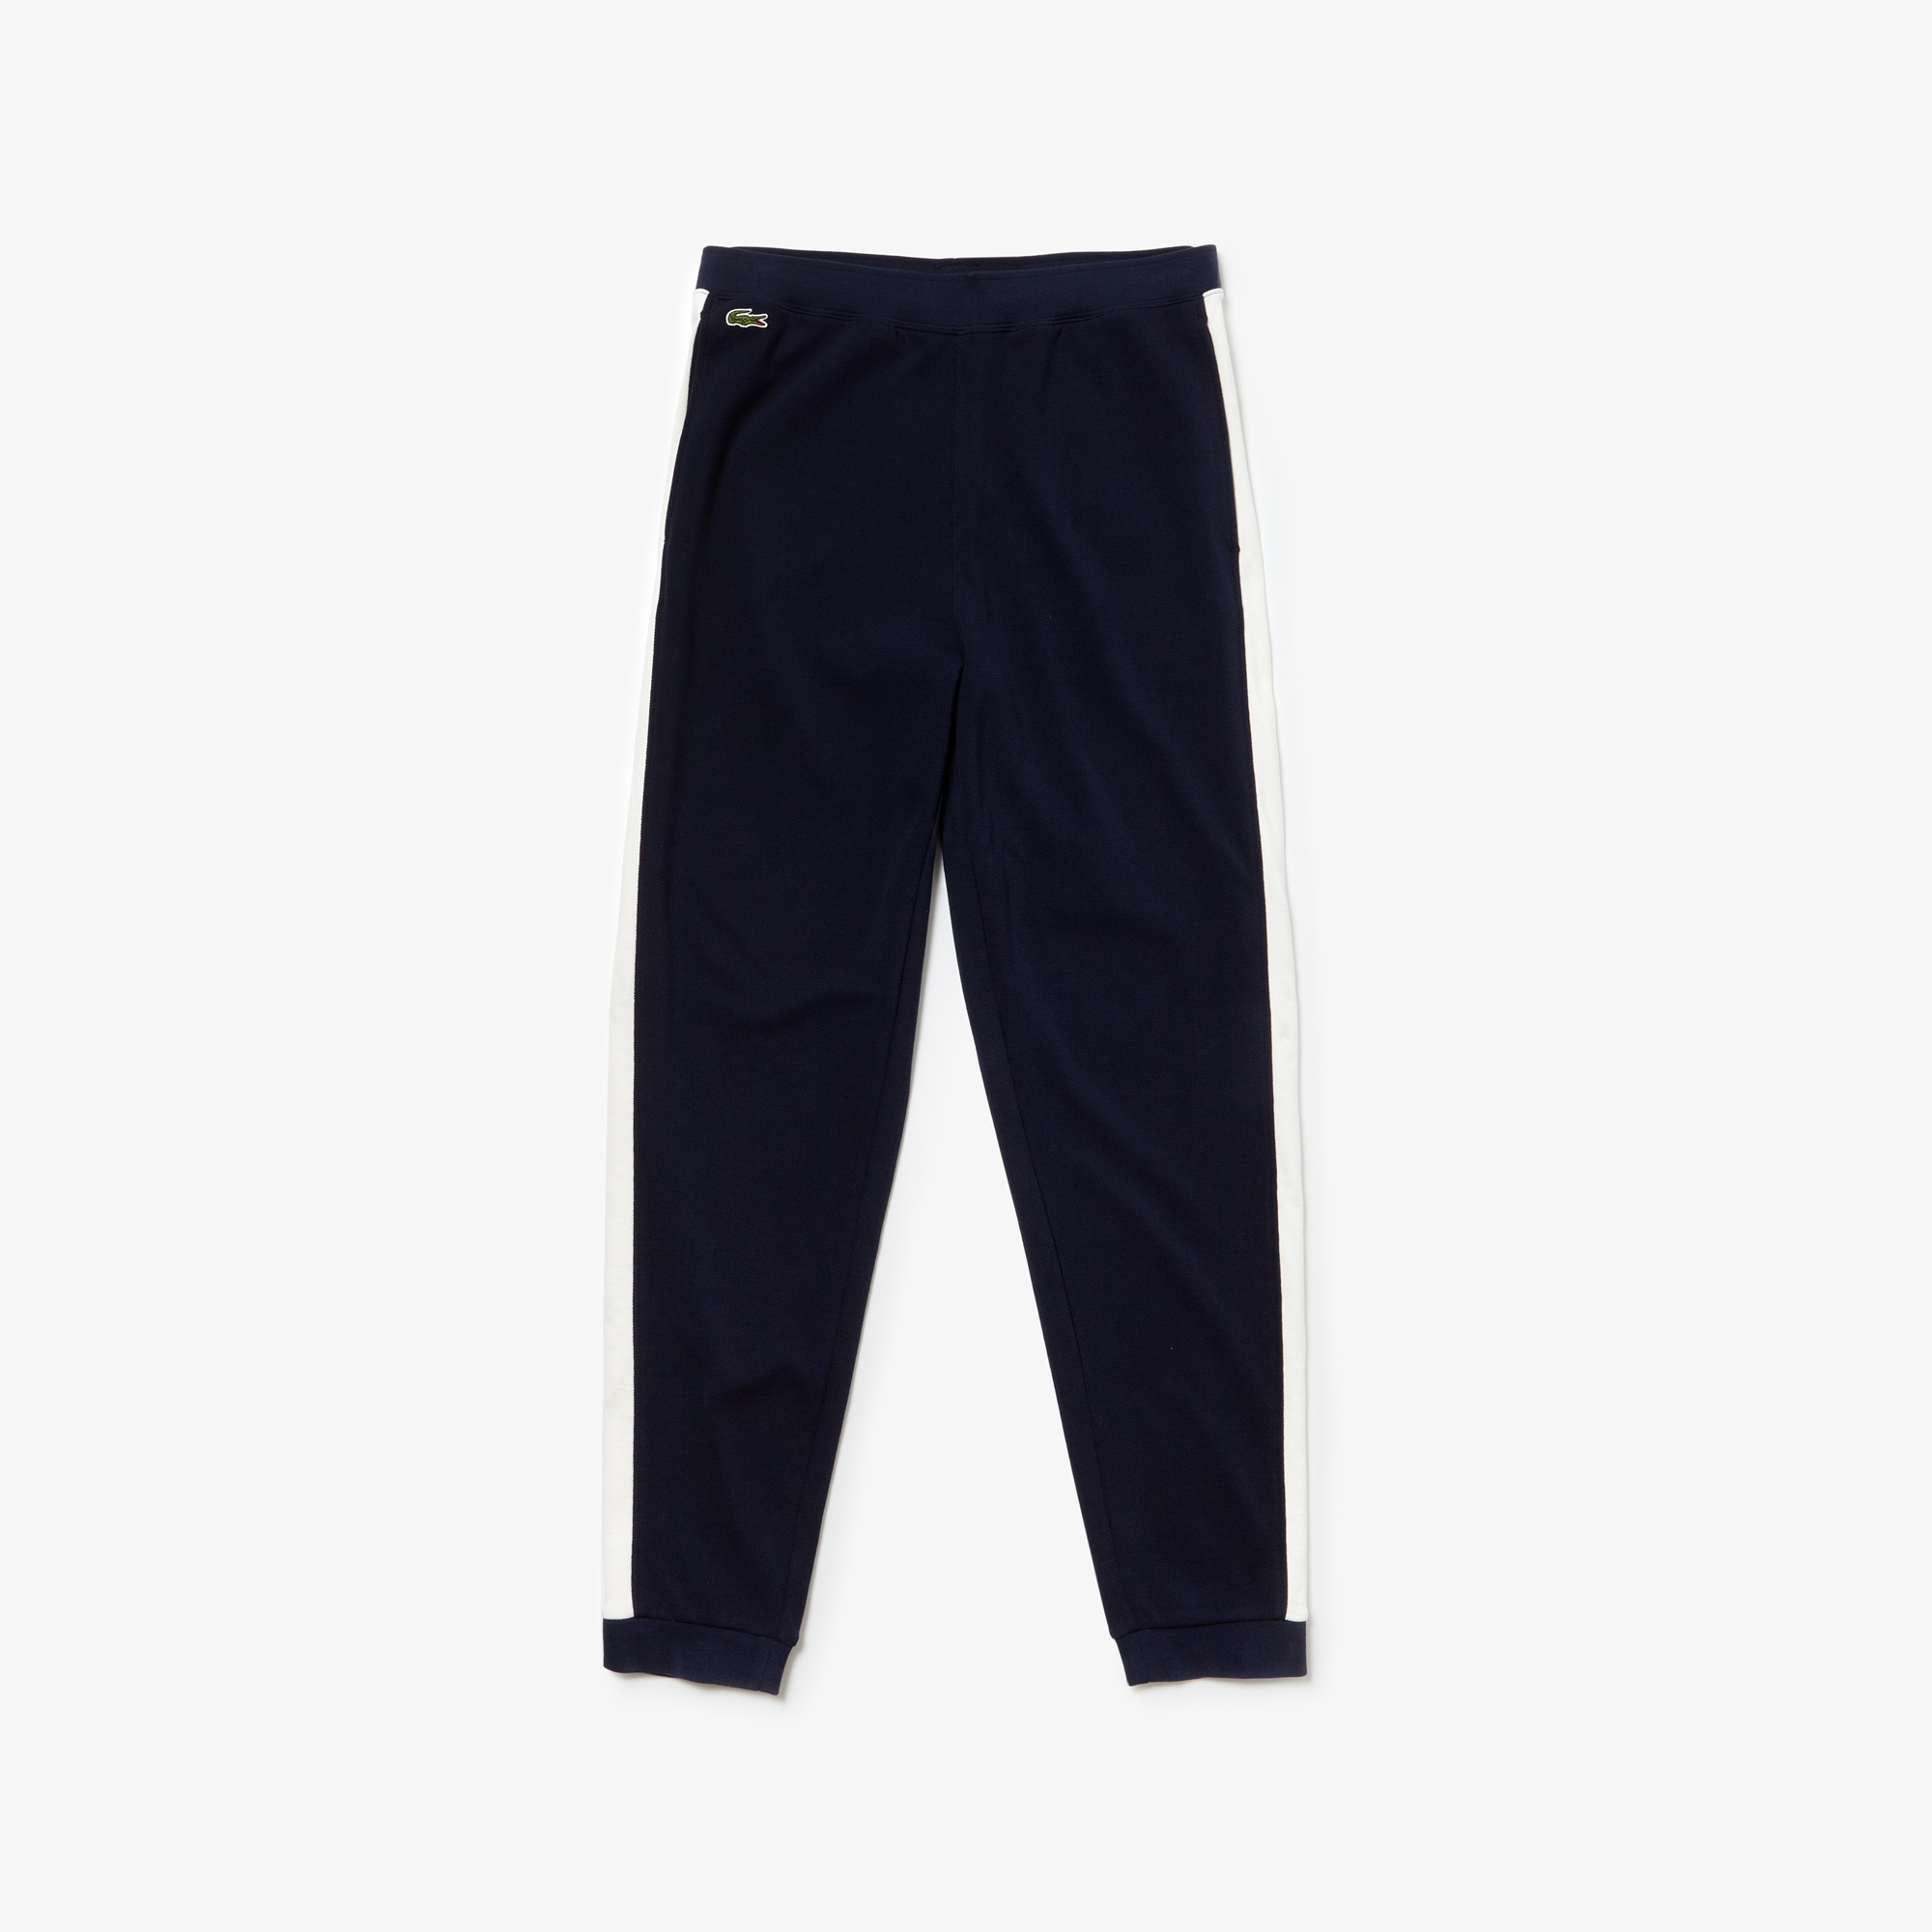 Men's Colourblock Piqué Fleece Sweatpants